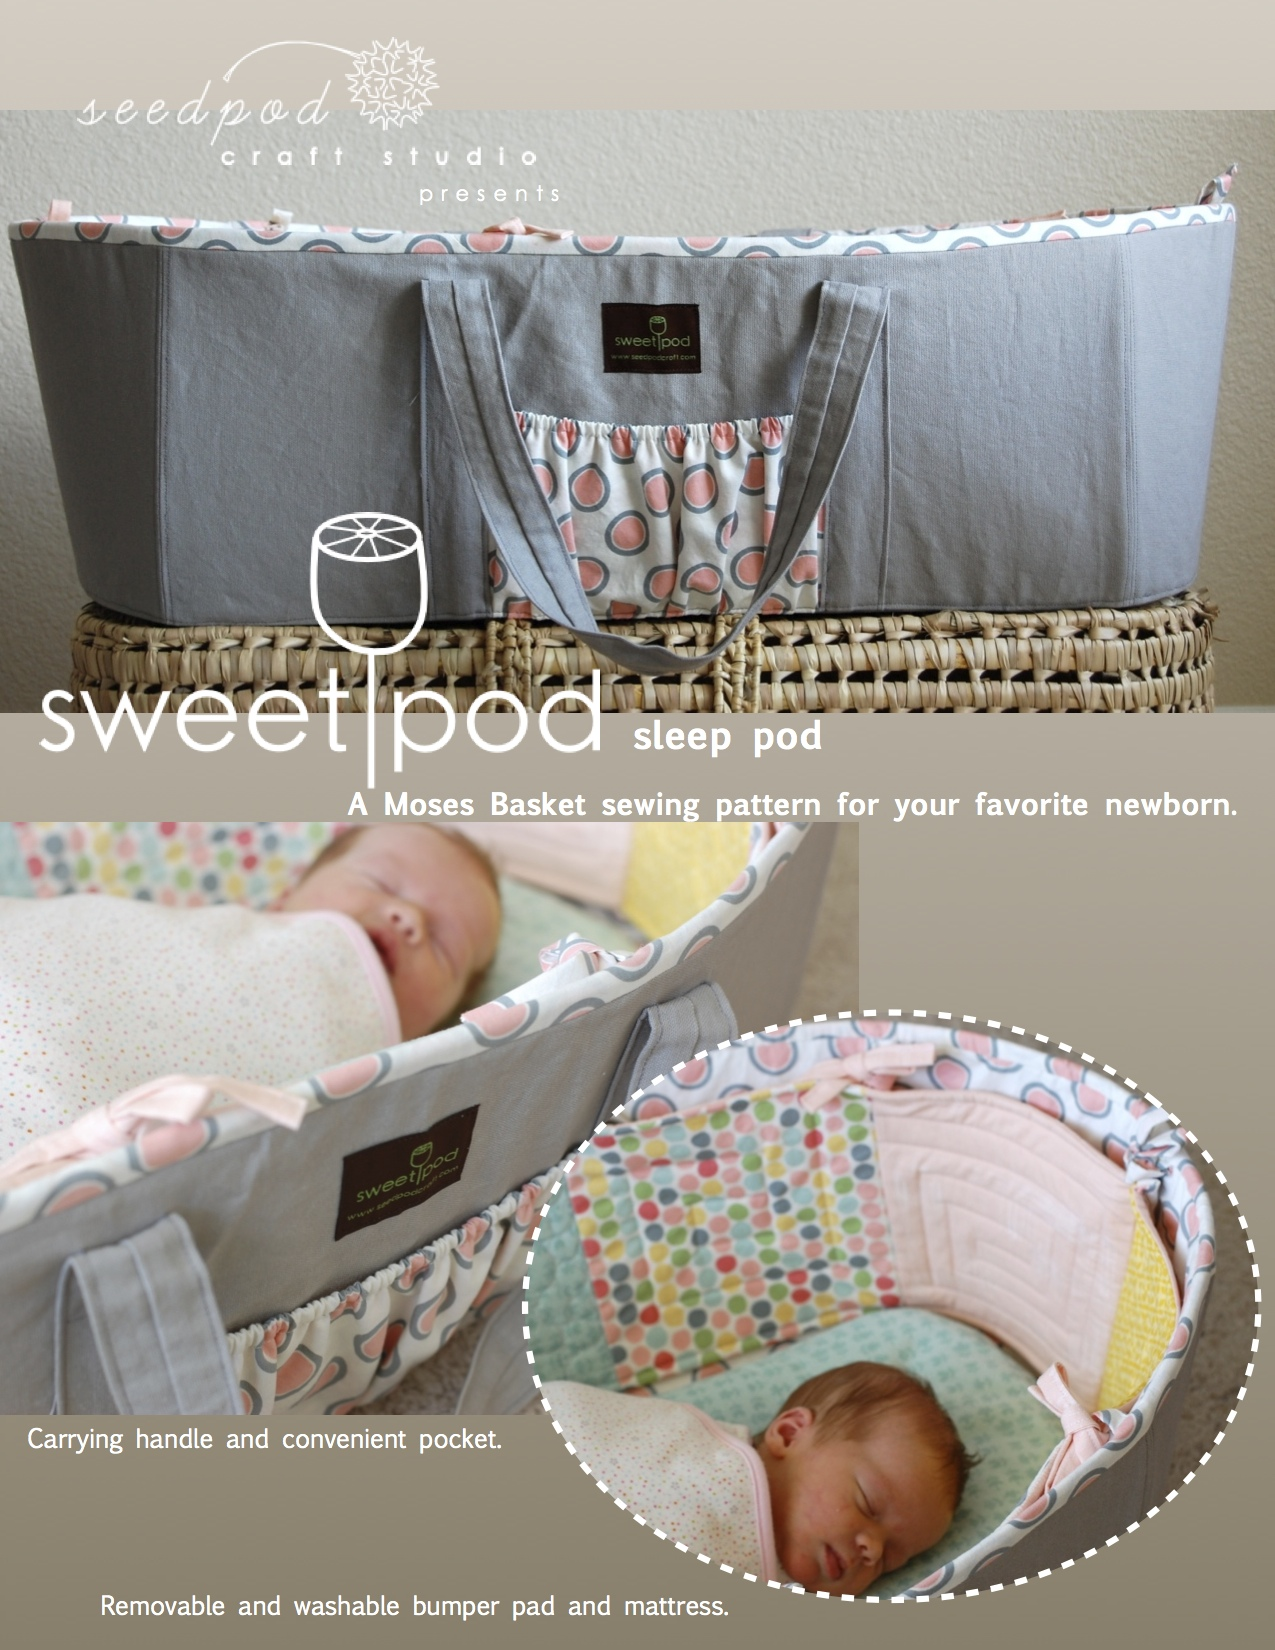 Sweetpod Baby Gear For Home Sewers